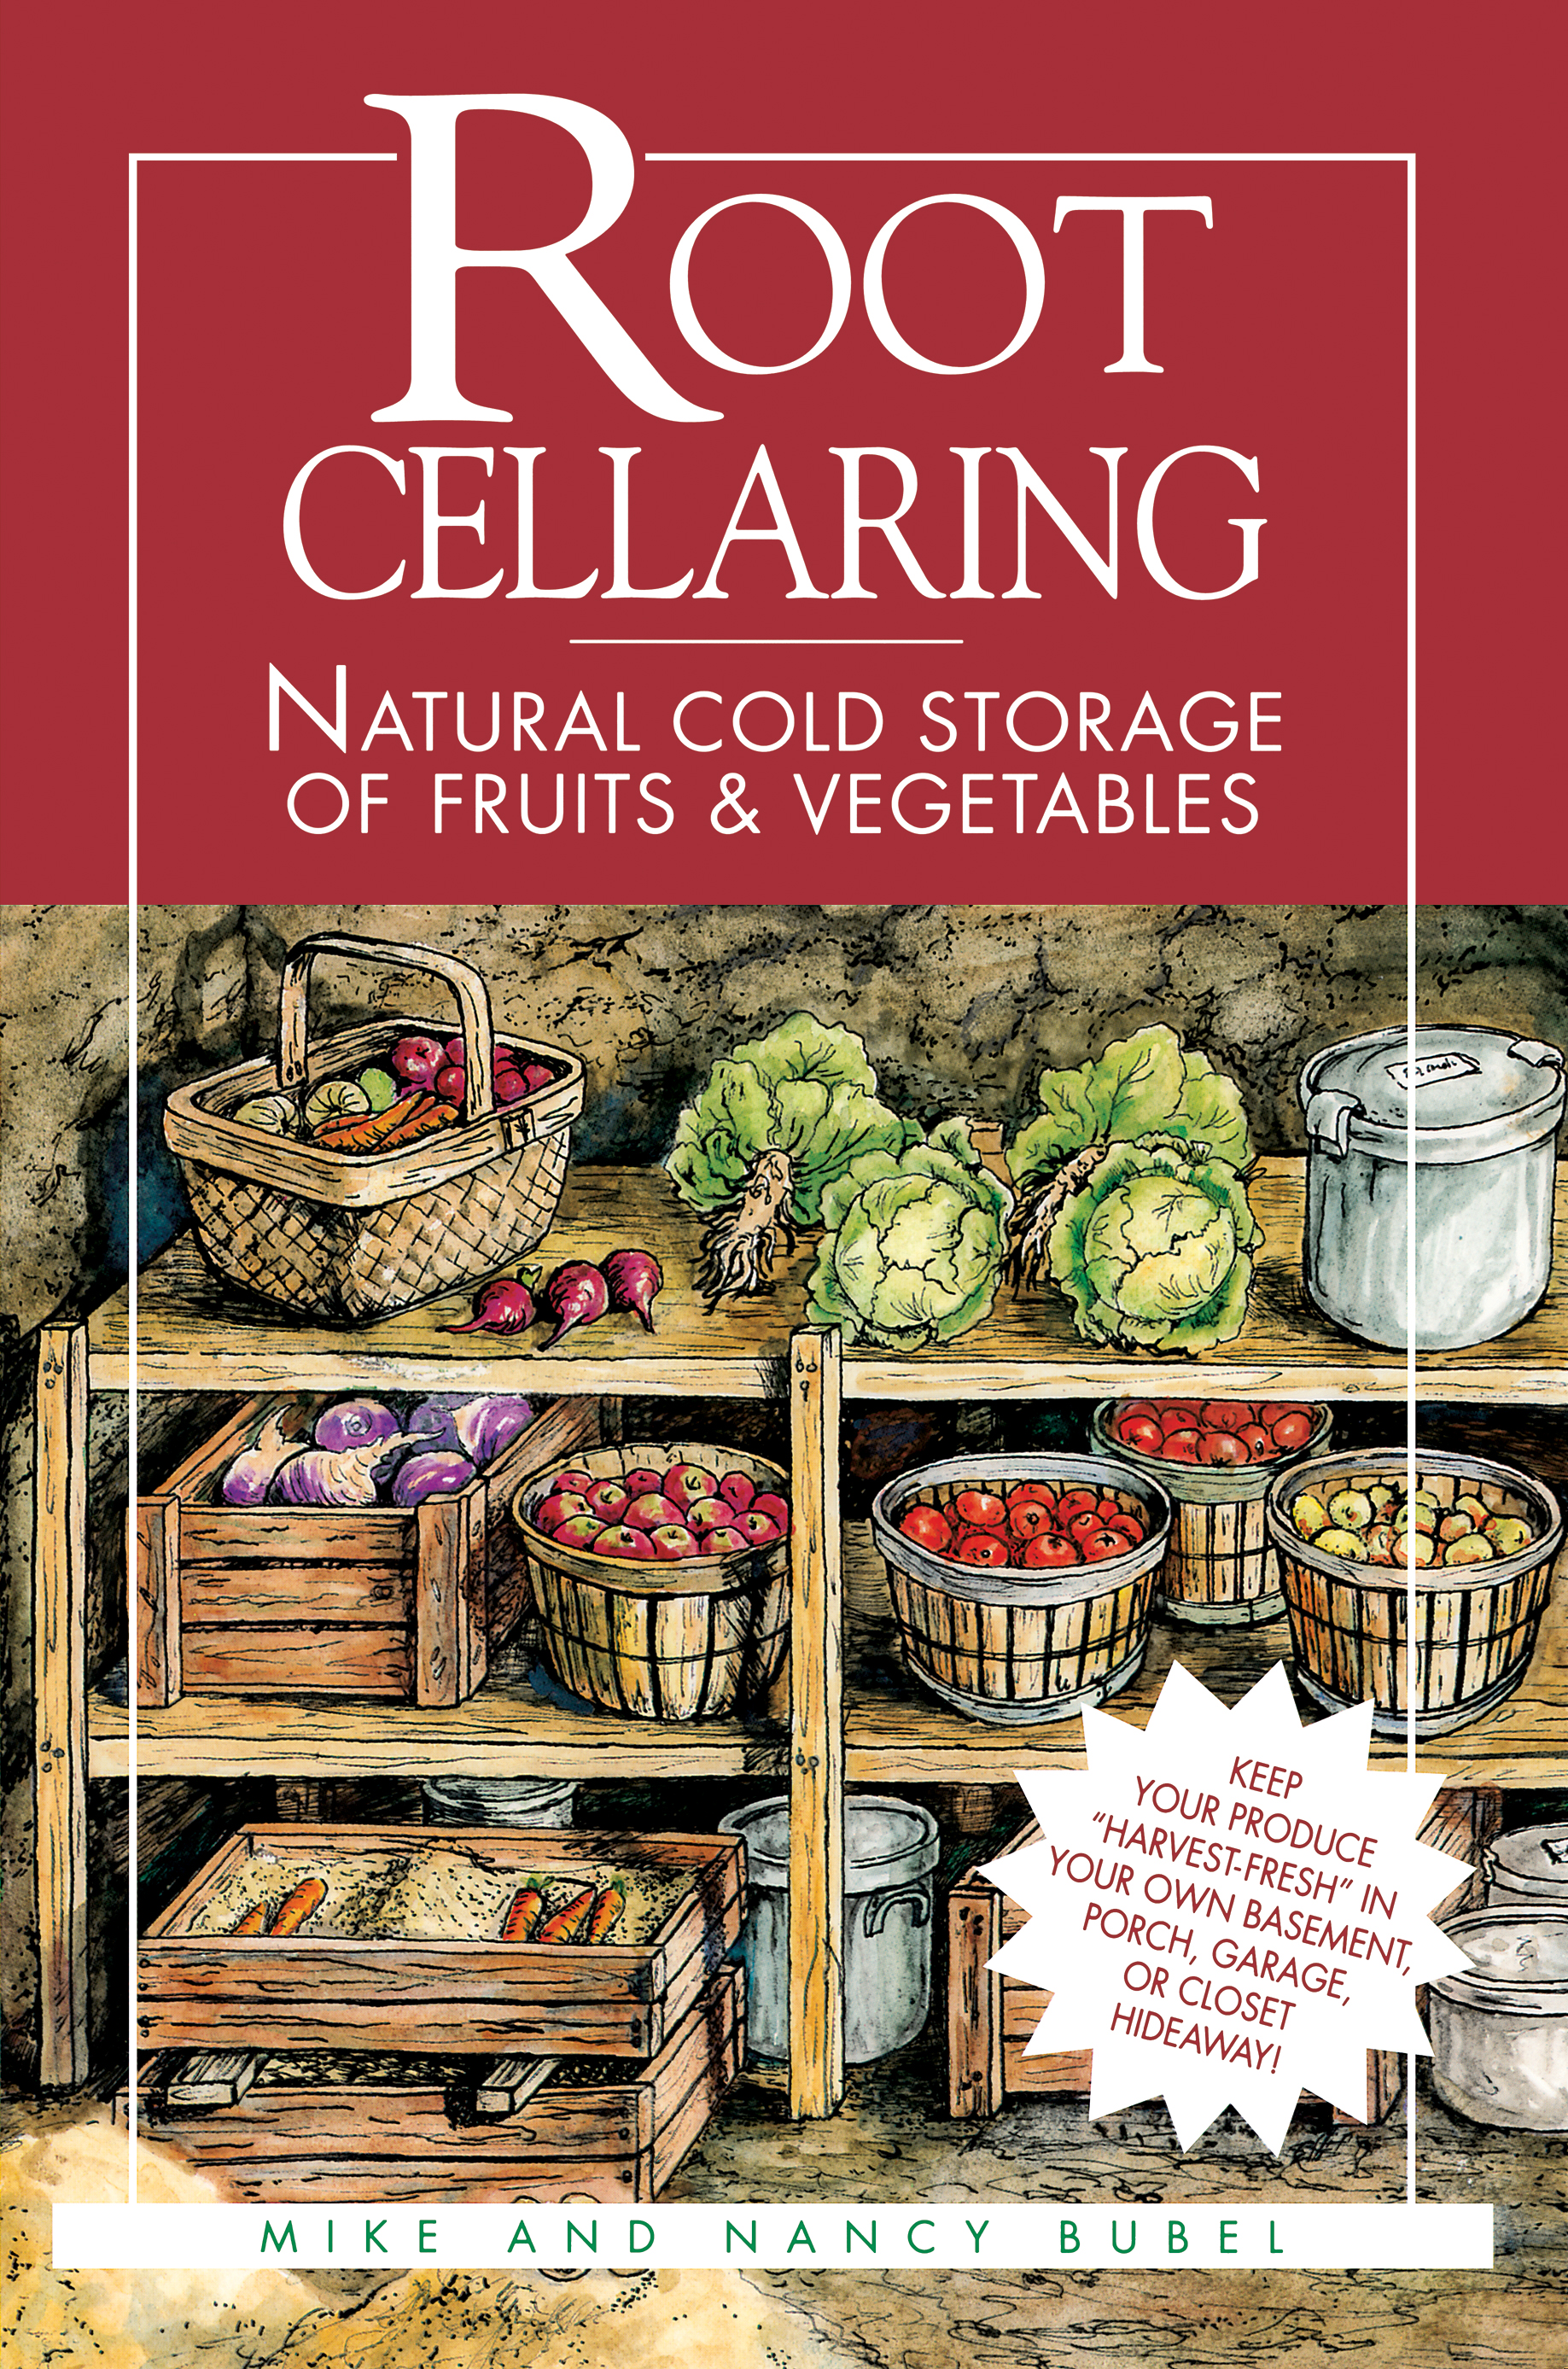 Root Cellaring Natural Cold Storage of Fruits & Vegetables - Mike Bubel